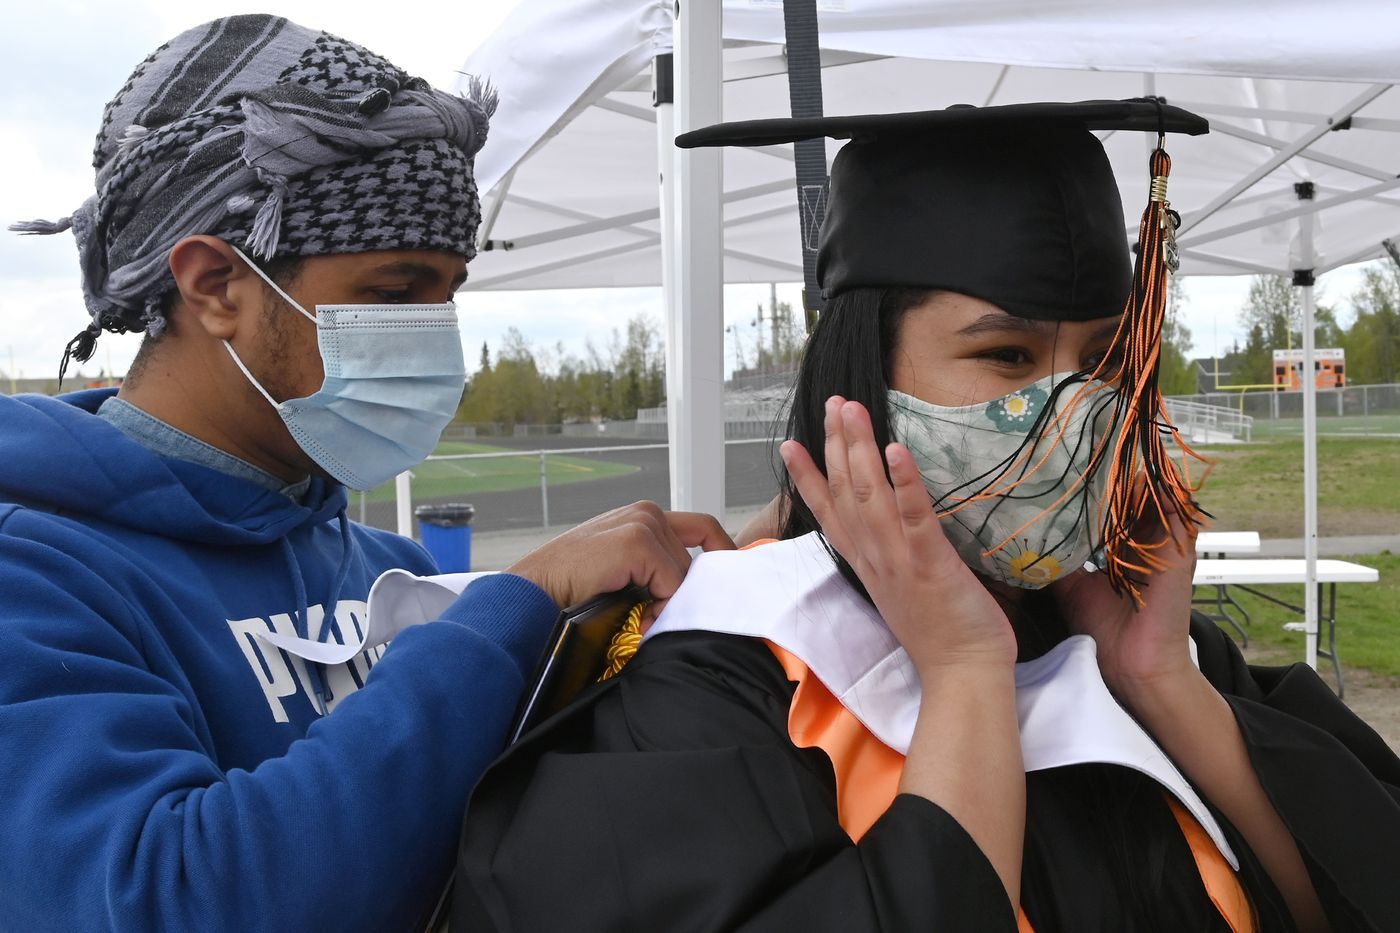 West High School senior Nicole Cedeno-Huff gets help from her brother George Cedeno-Huff as she prepares to have a photo taken in her graduation robe on Monday, May 18, 2020. (Bill Roth / ADN)